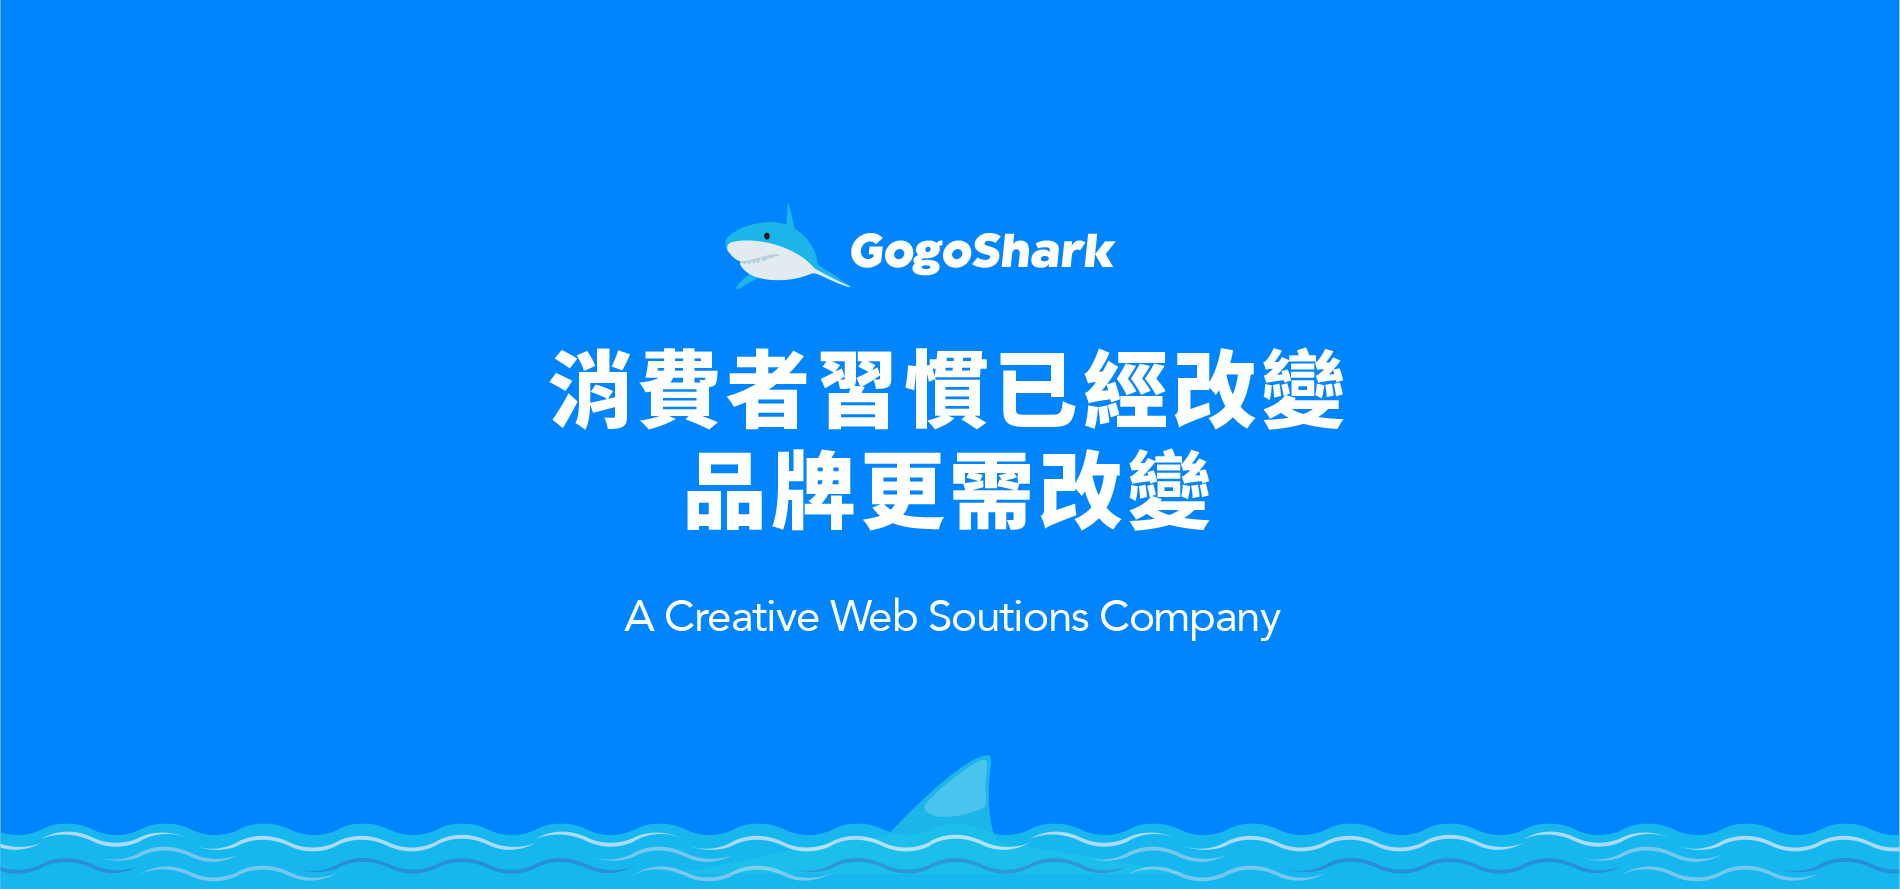 GogoShark-For-better-web-design-environment-in-Taiwan